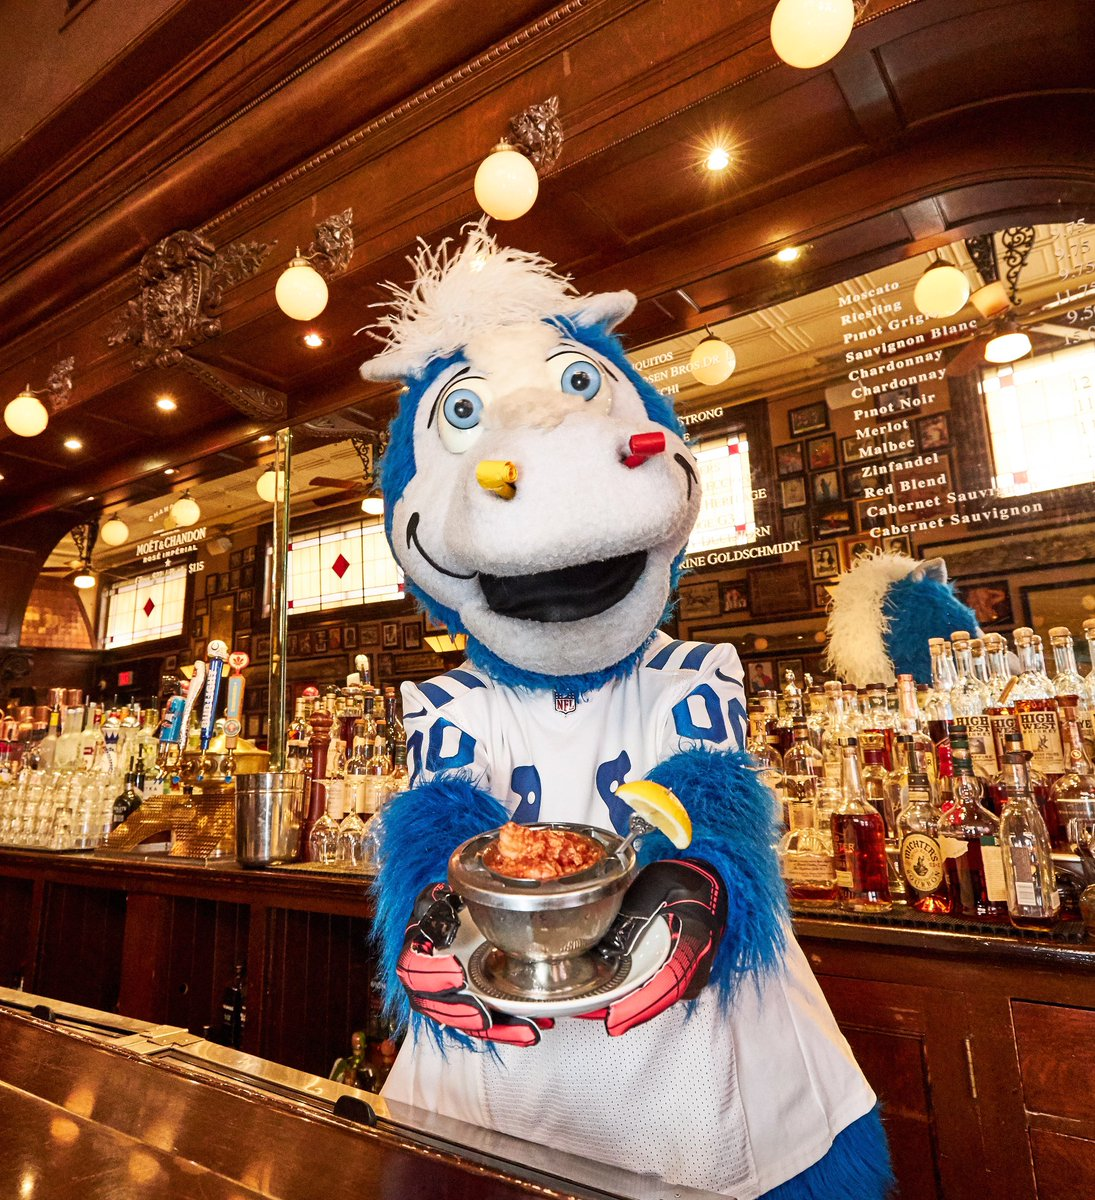 @blue needs our help to vote him into the Mascot Hall of Fame! And he's not above trying to bribe you with shrimp cocktail. VOTE HERE: mascothalloffame.com/thevote/